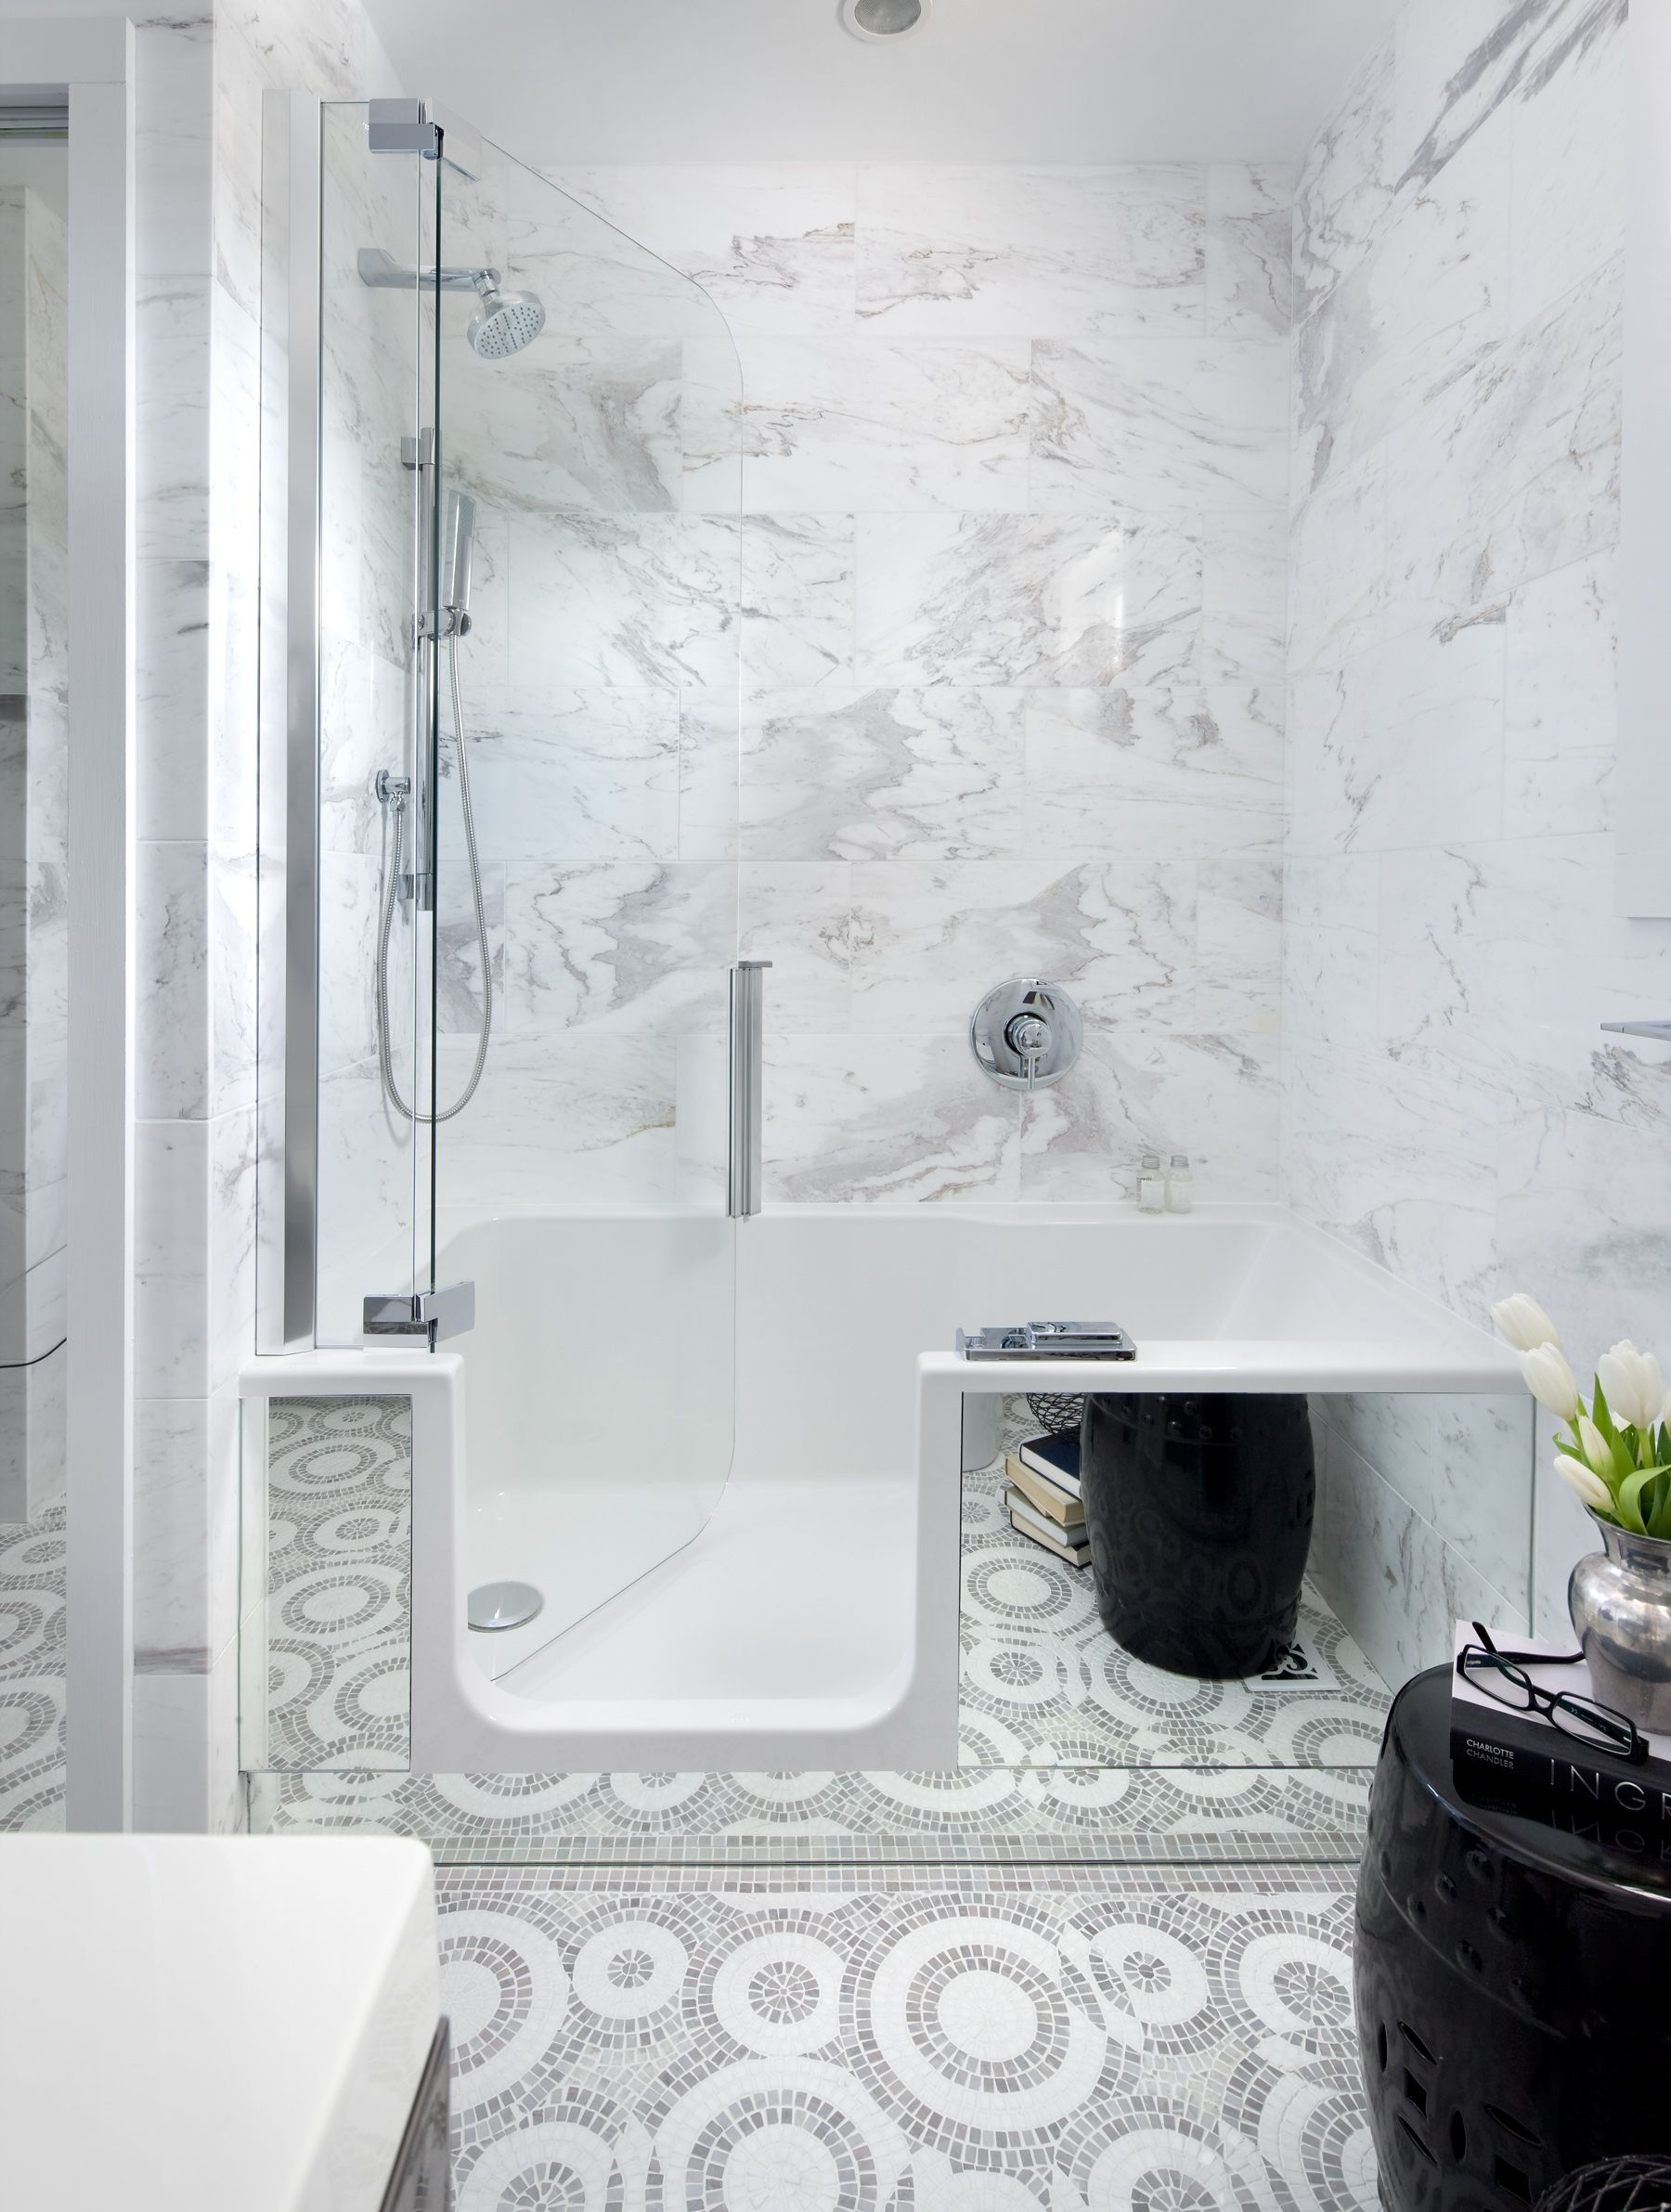 Pin by Bonnie Wolfe on bath/shower units in 2018 | Pinterest ...